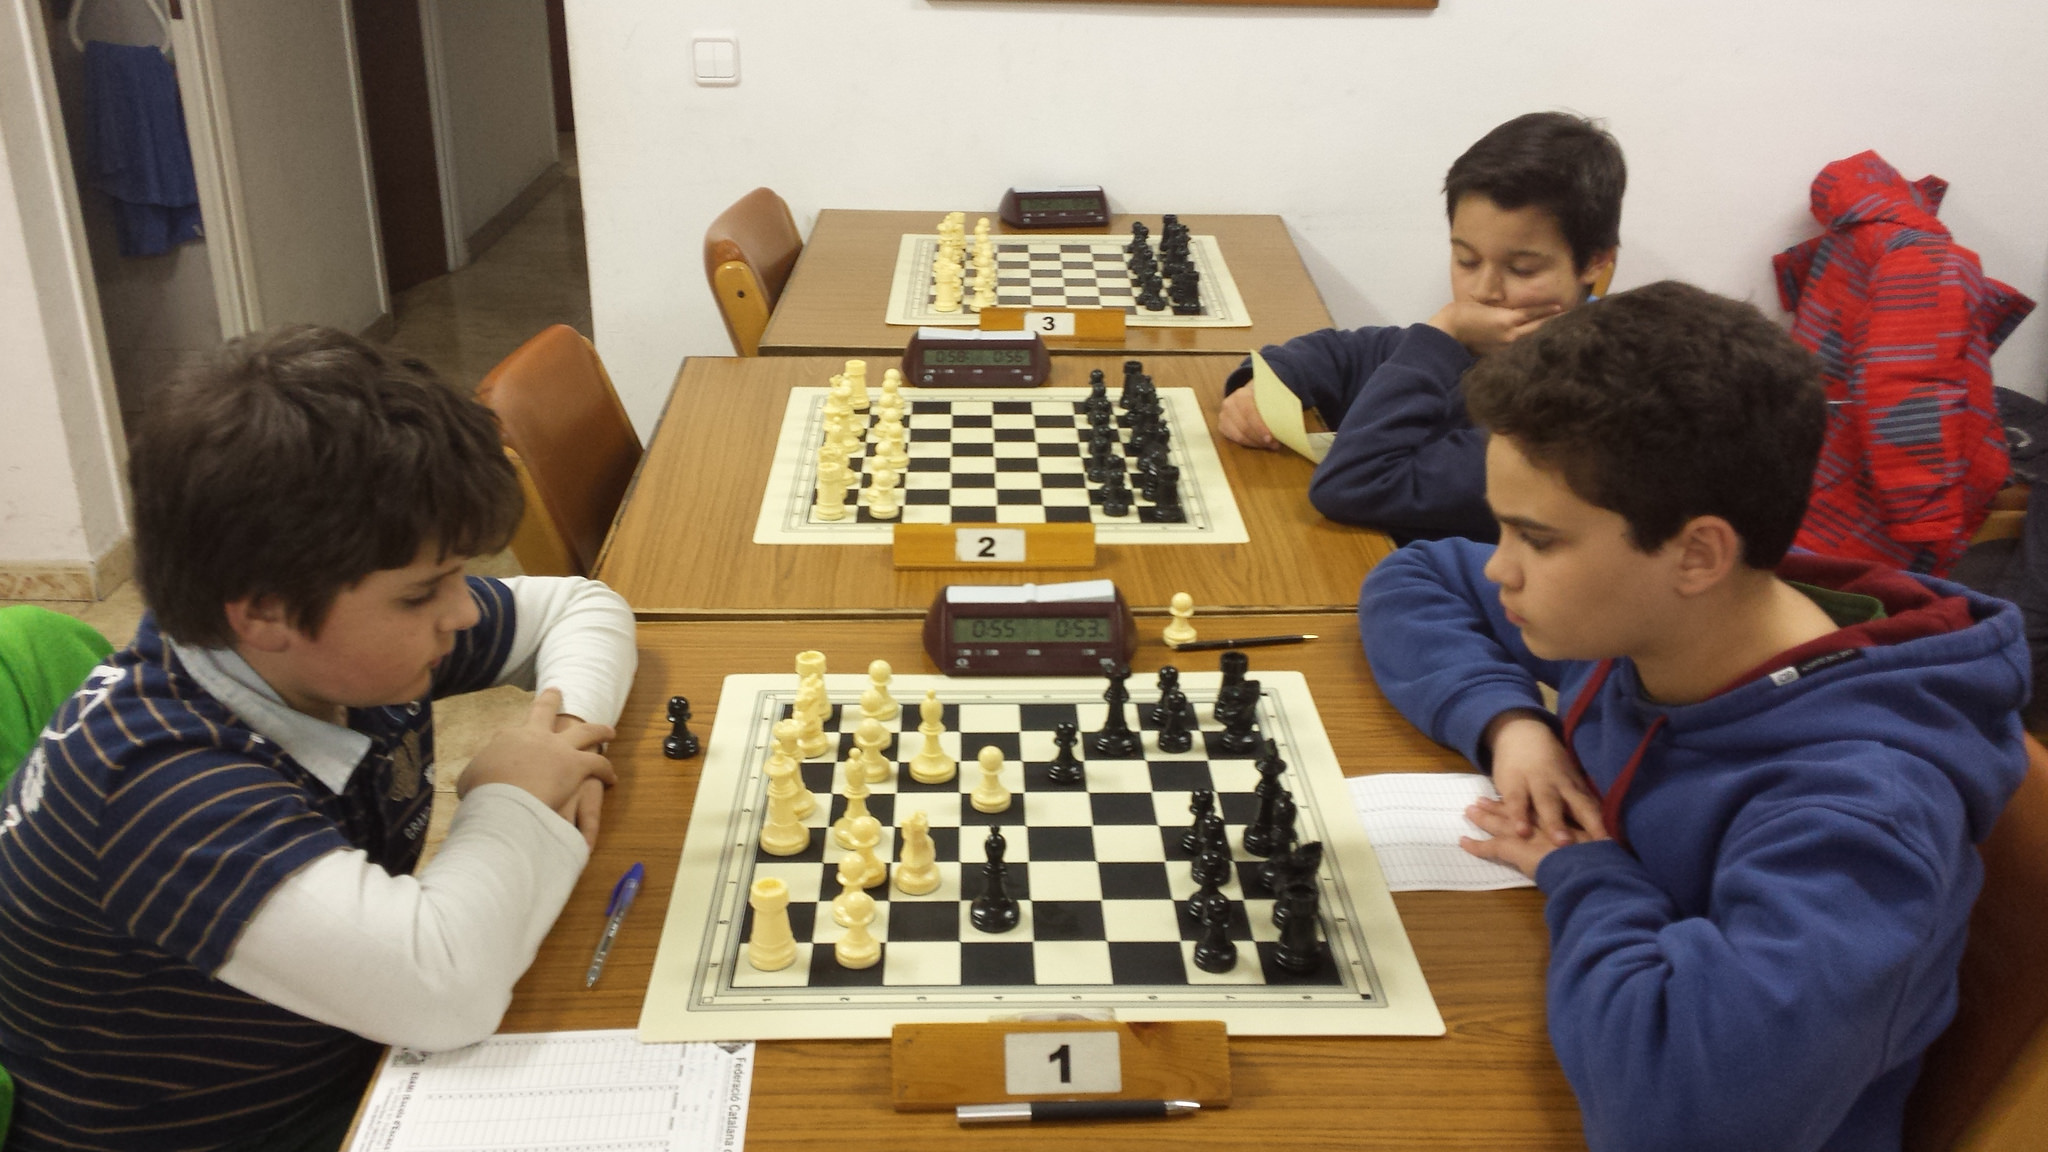 Comarques Pirinenques 2015 – Ronda 4